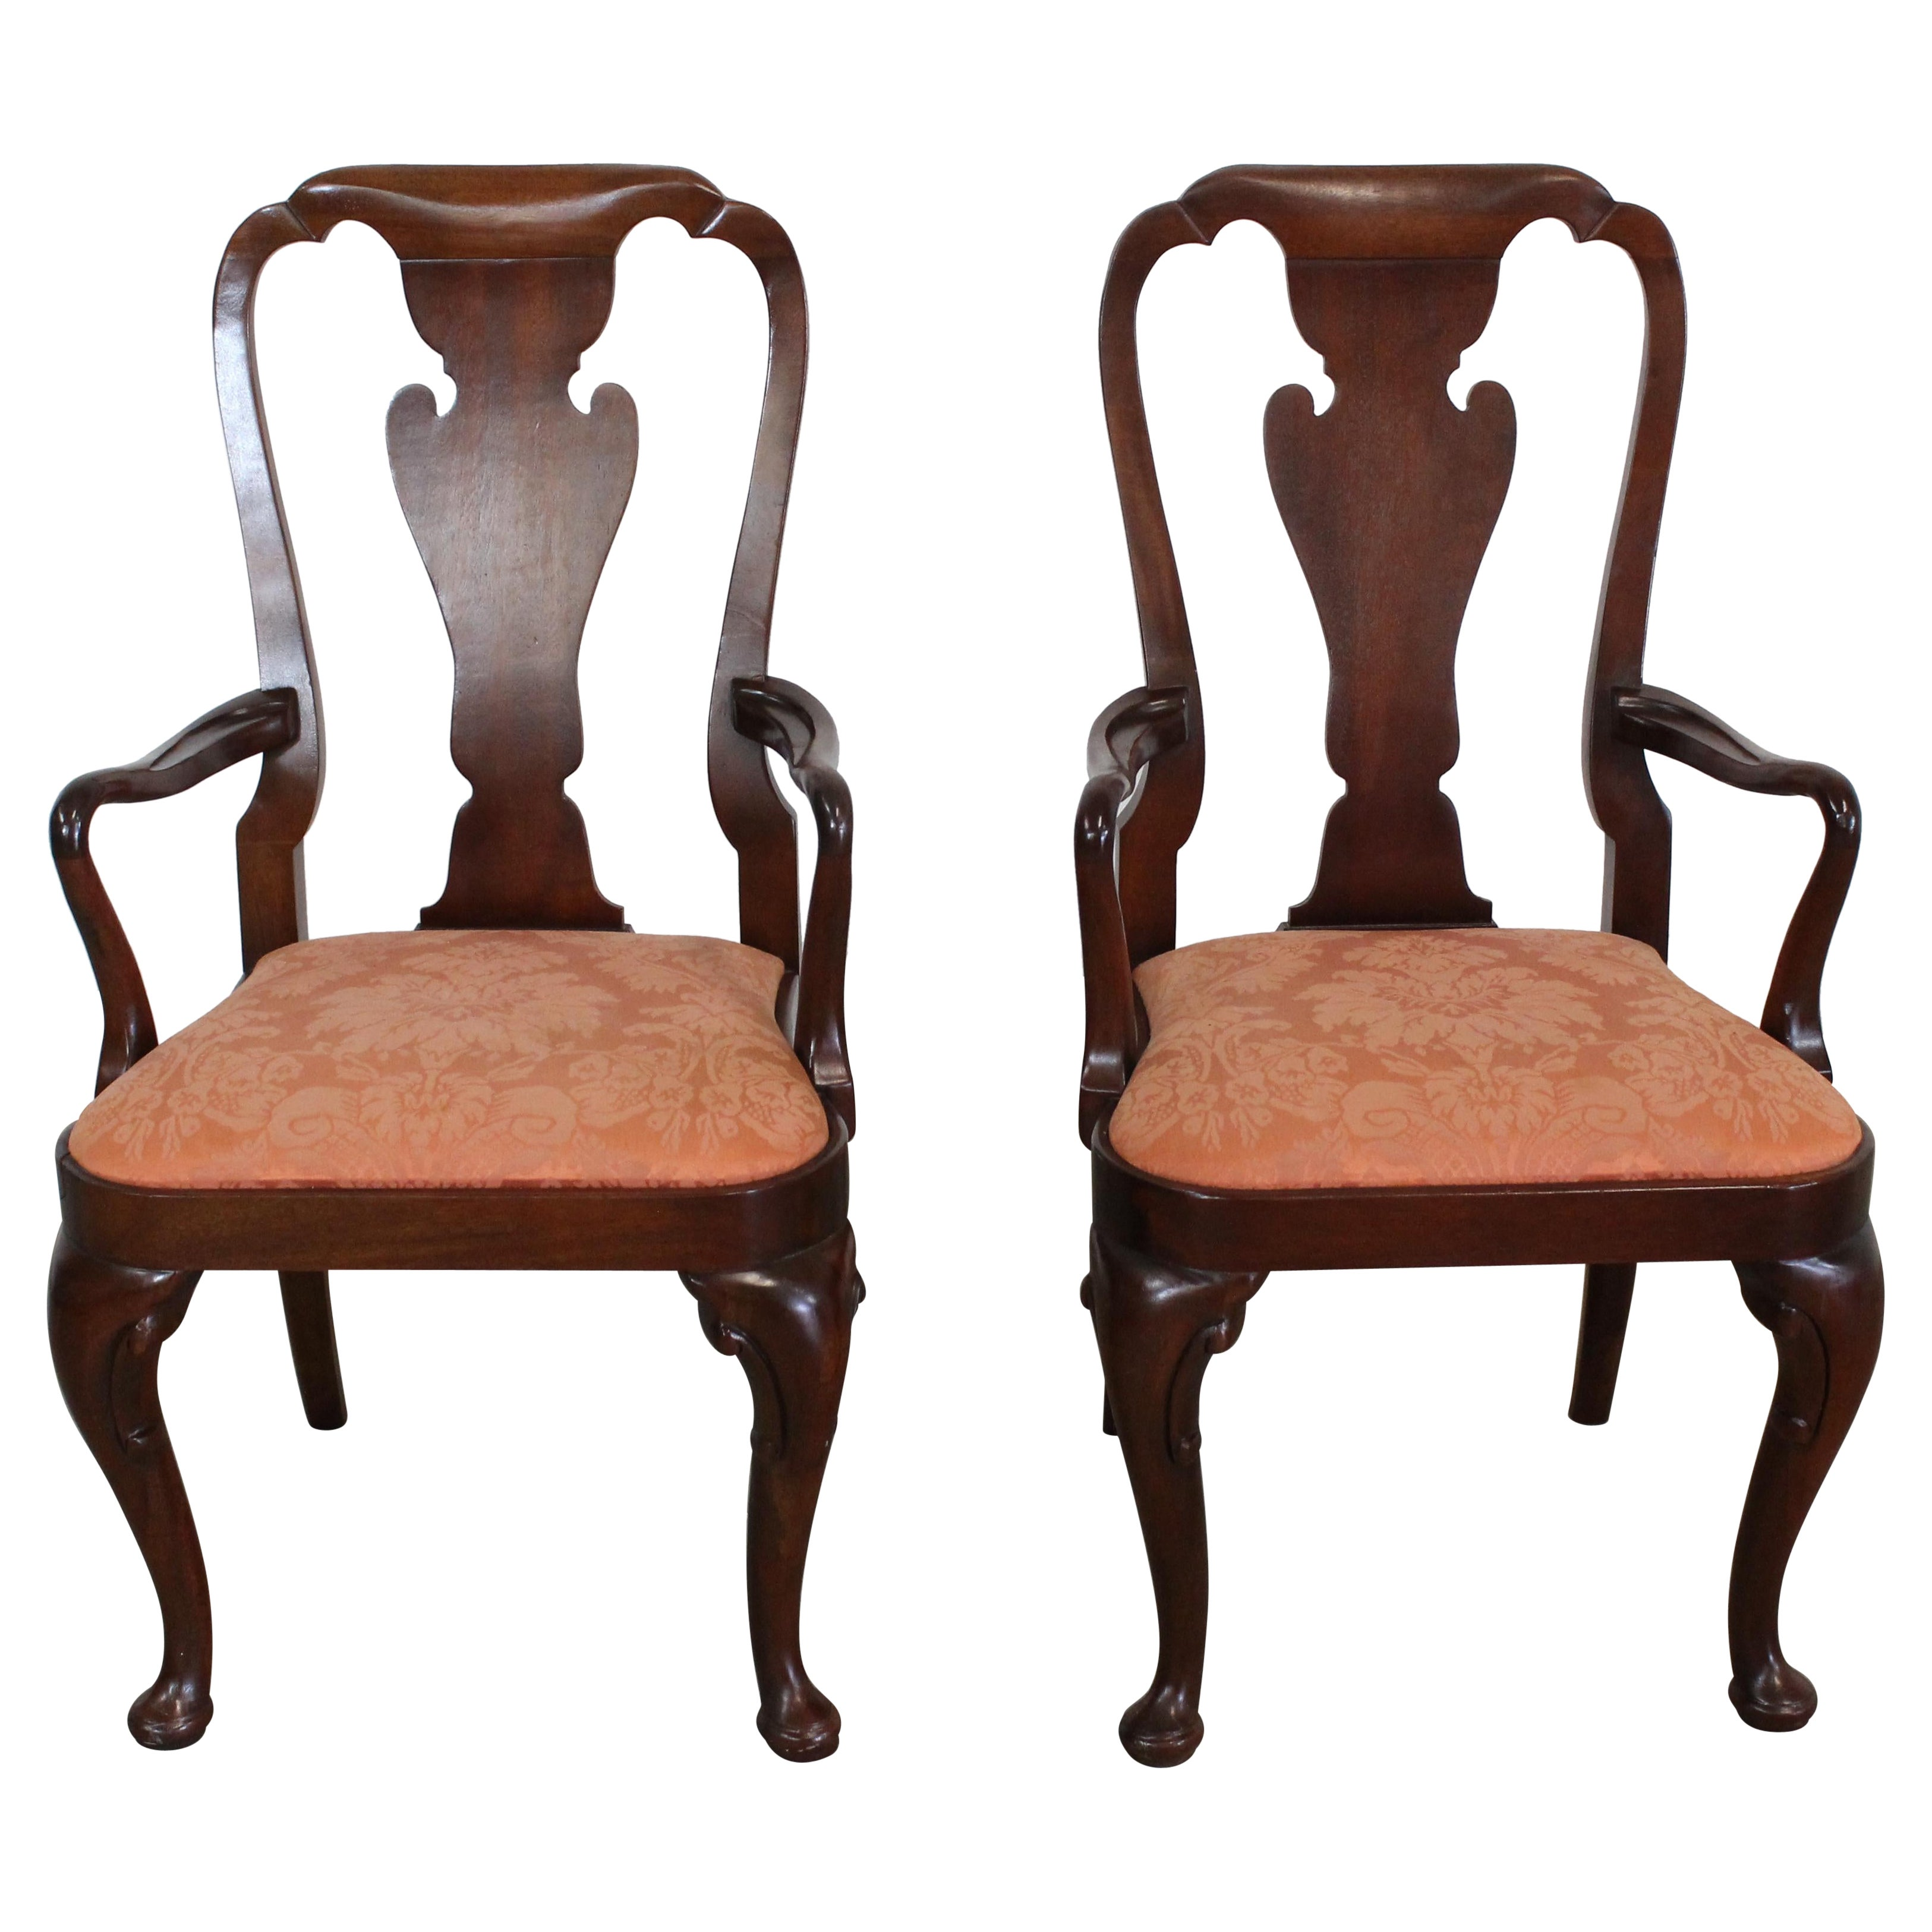 Pair of Queen Anne Solid Mahogany Dining Arm Chairs by Baker